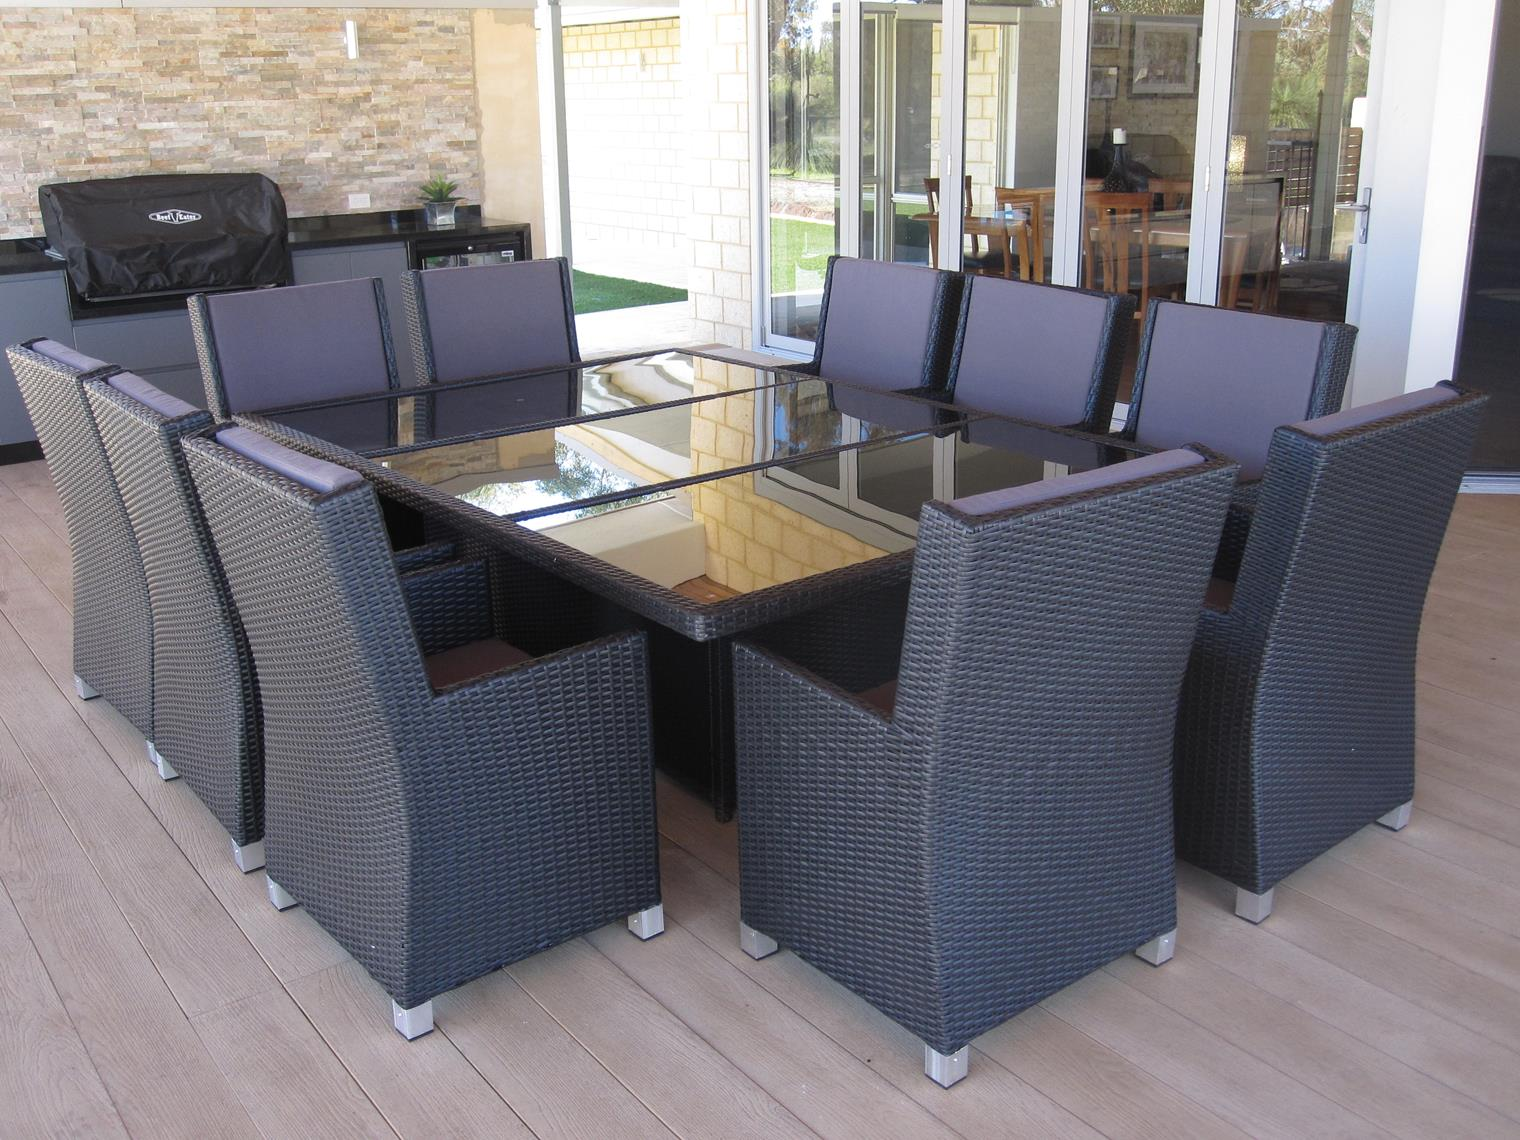 outdoor furniture perth - goodworksfurniture SWFMBNW